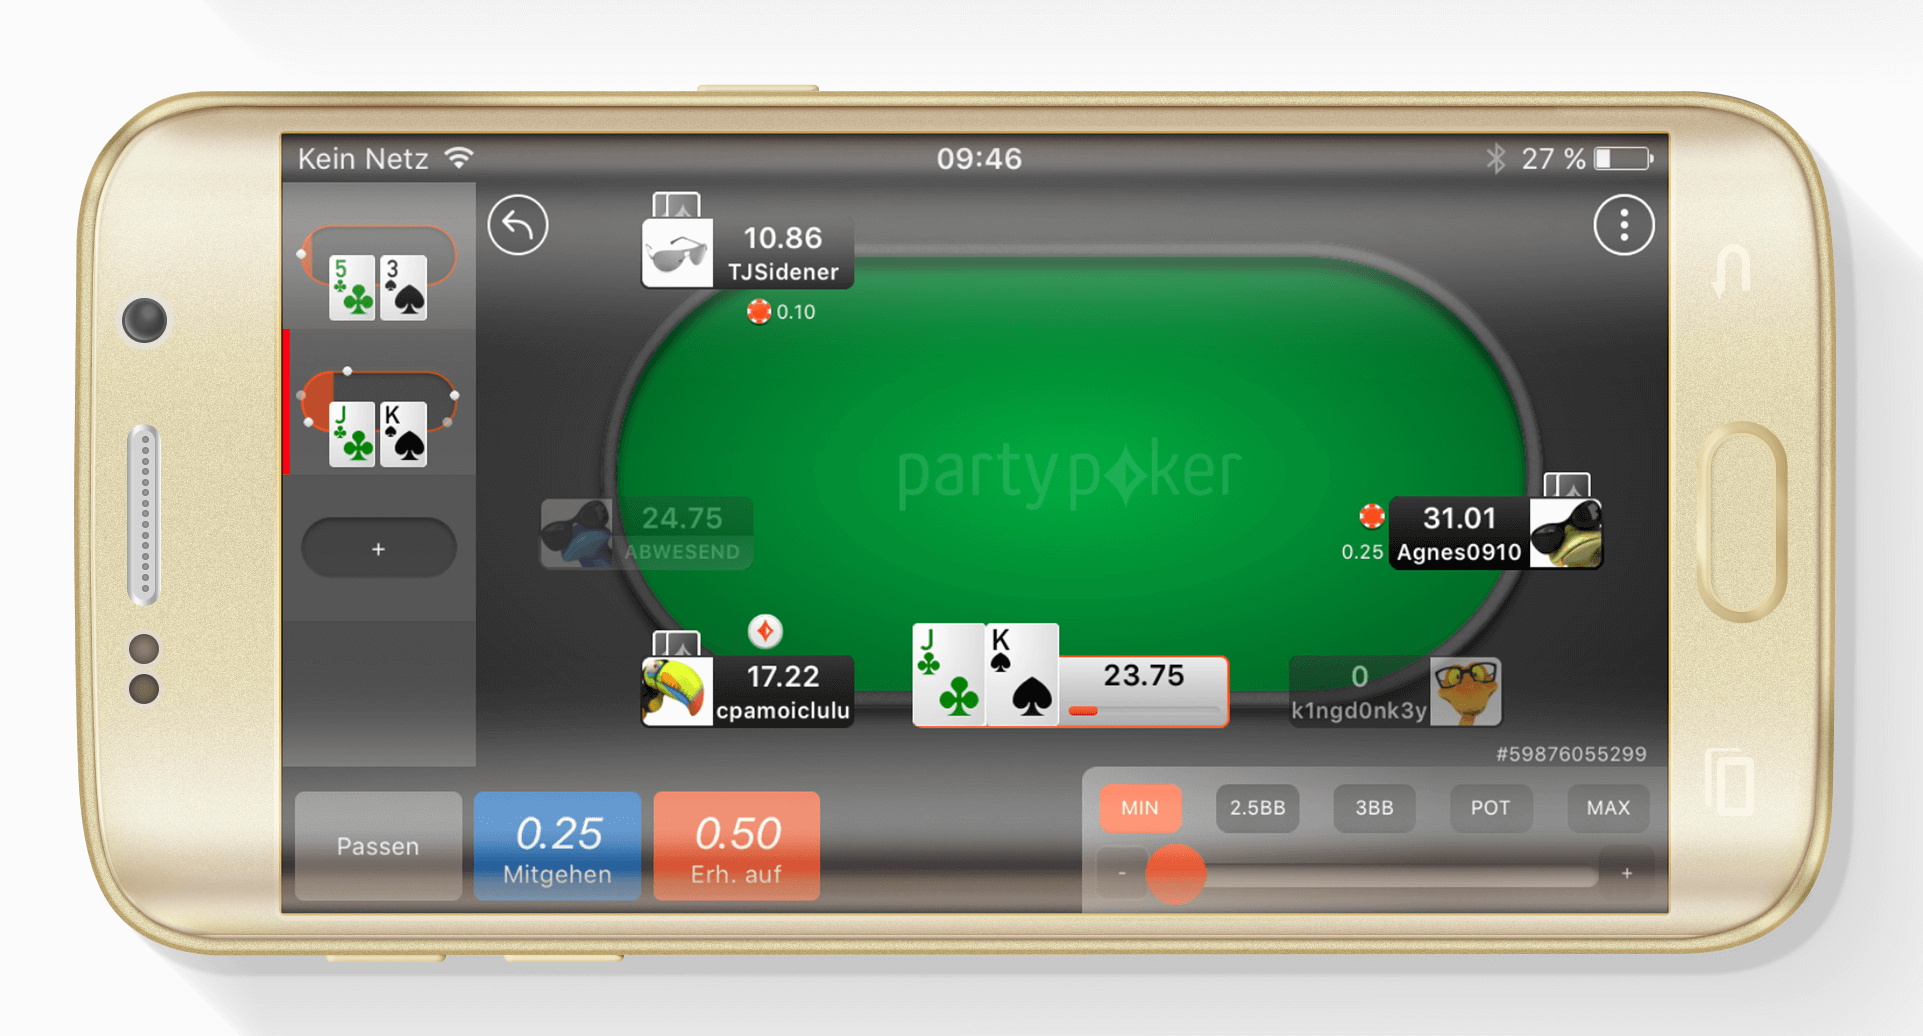 Poker dinero real android miapuesta 10€ gratis 776827